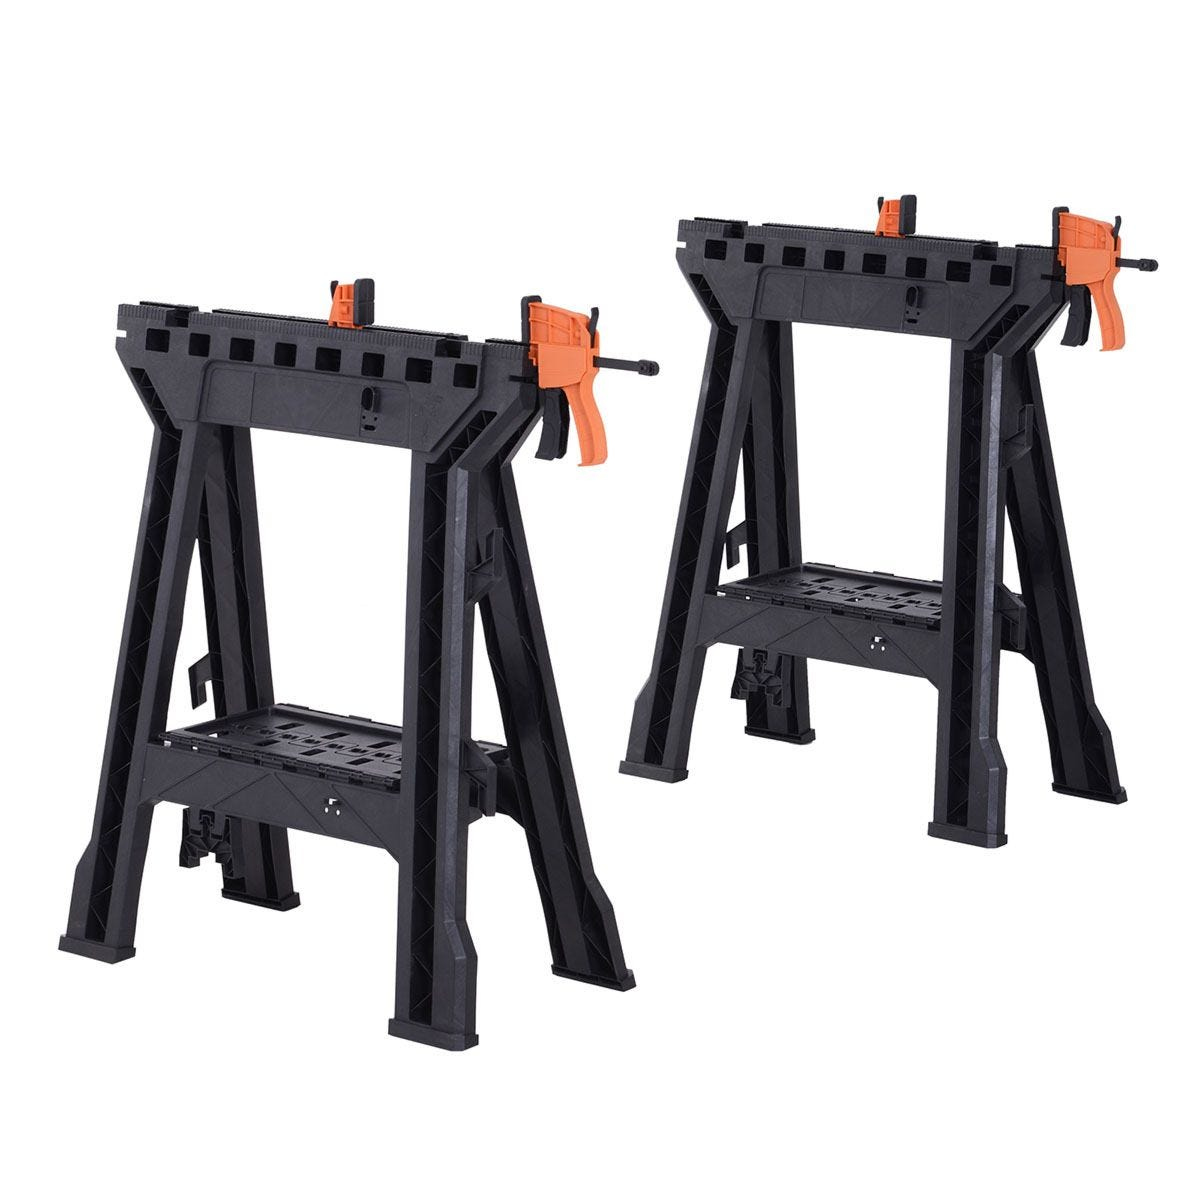 Durhand Foldable Clamping Sawhorse Trestle Twin Support Bars Cutting Stands Workbench - Black & Orange